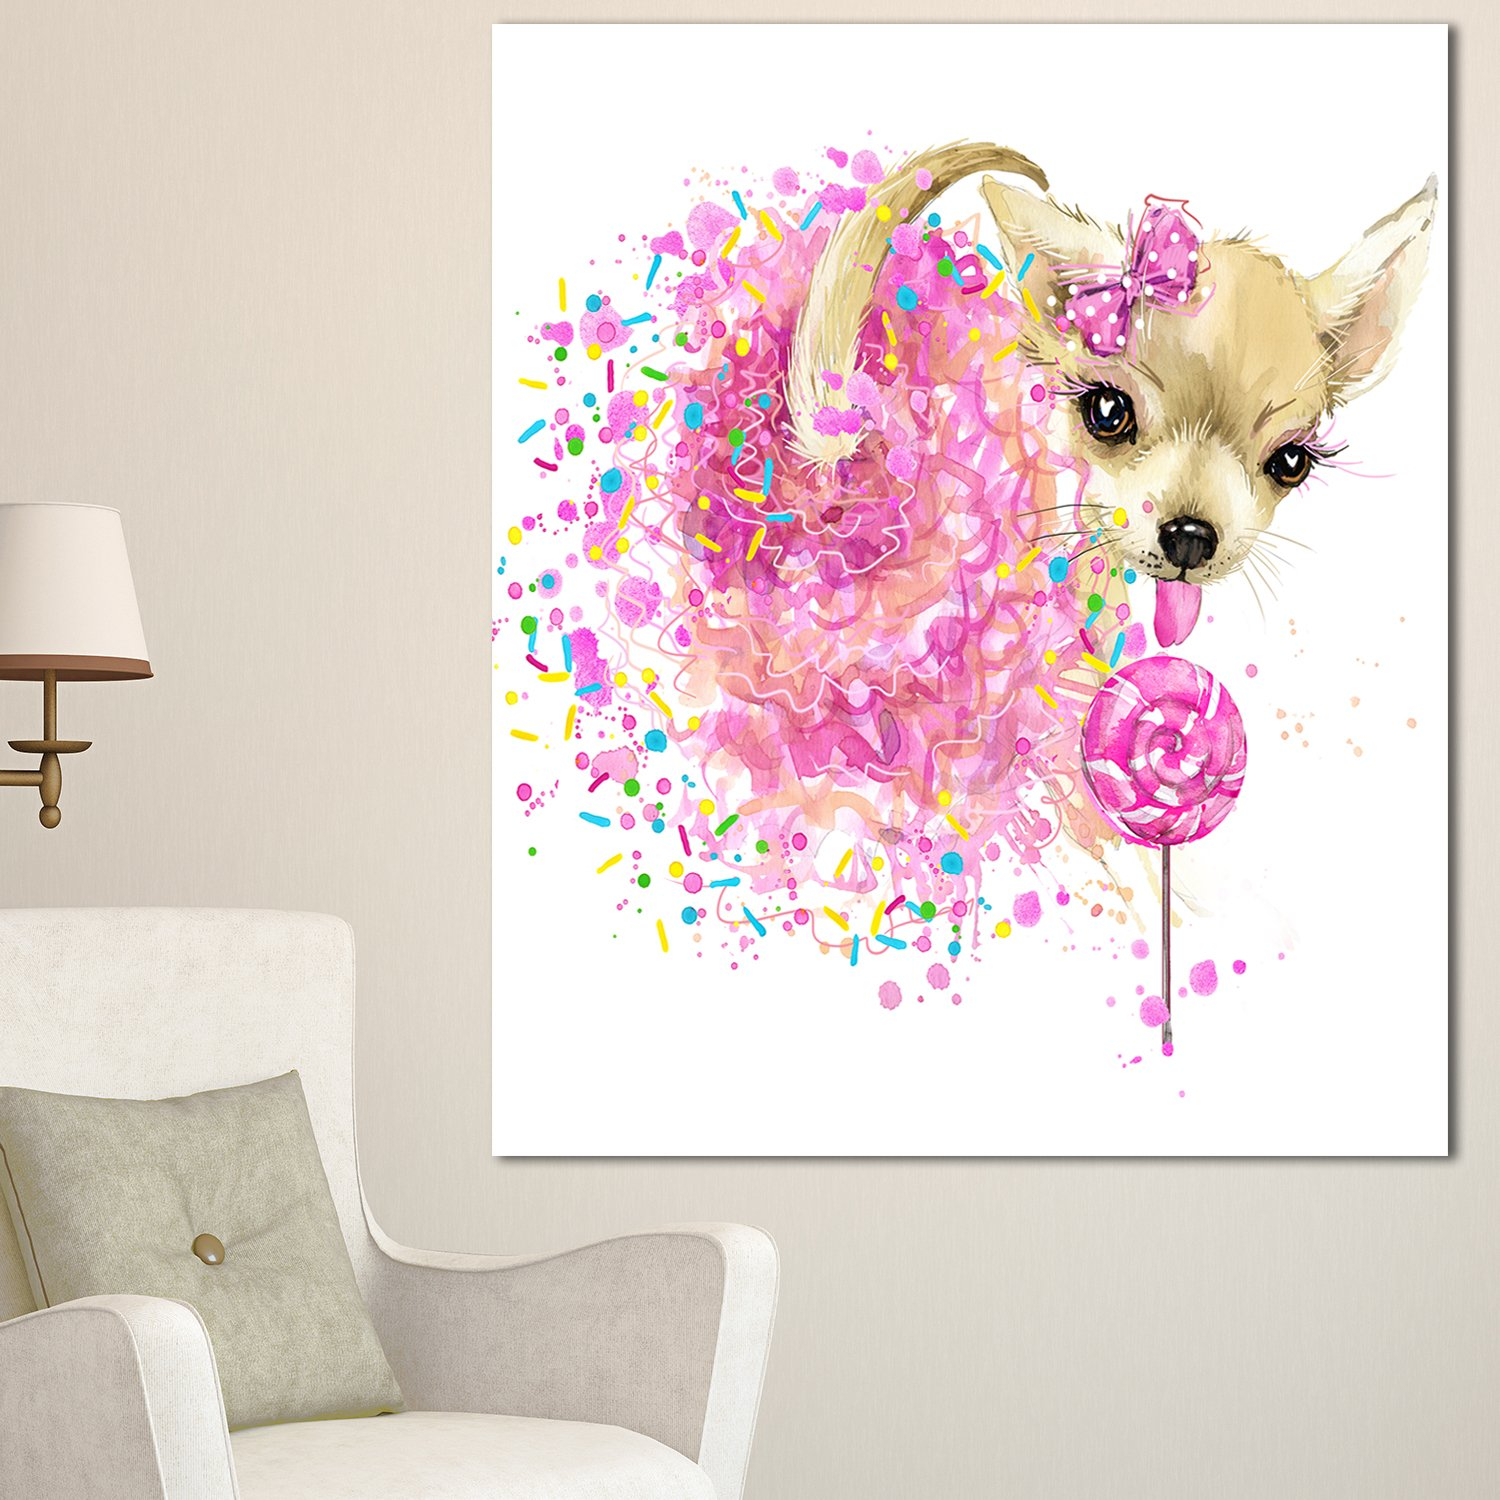 Designart Mt13394 30 40 Sweet Pink Dog Without Glasses Large Animal Glossy Metal Wall Art 30x40 Pink 30x40 Amazon In Home Kitchen